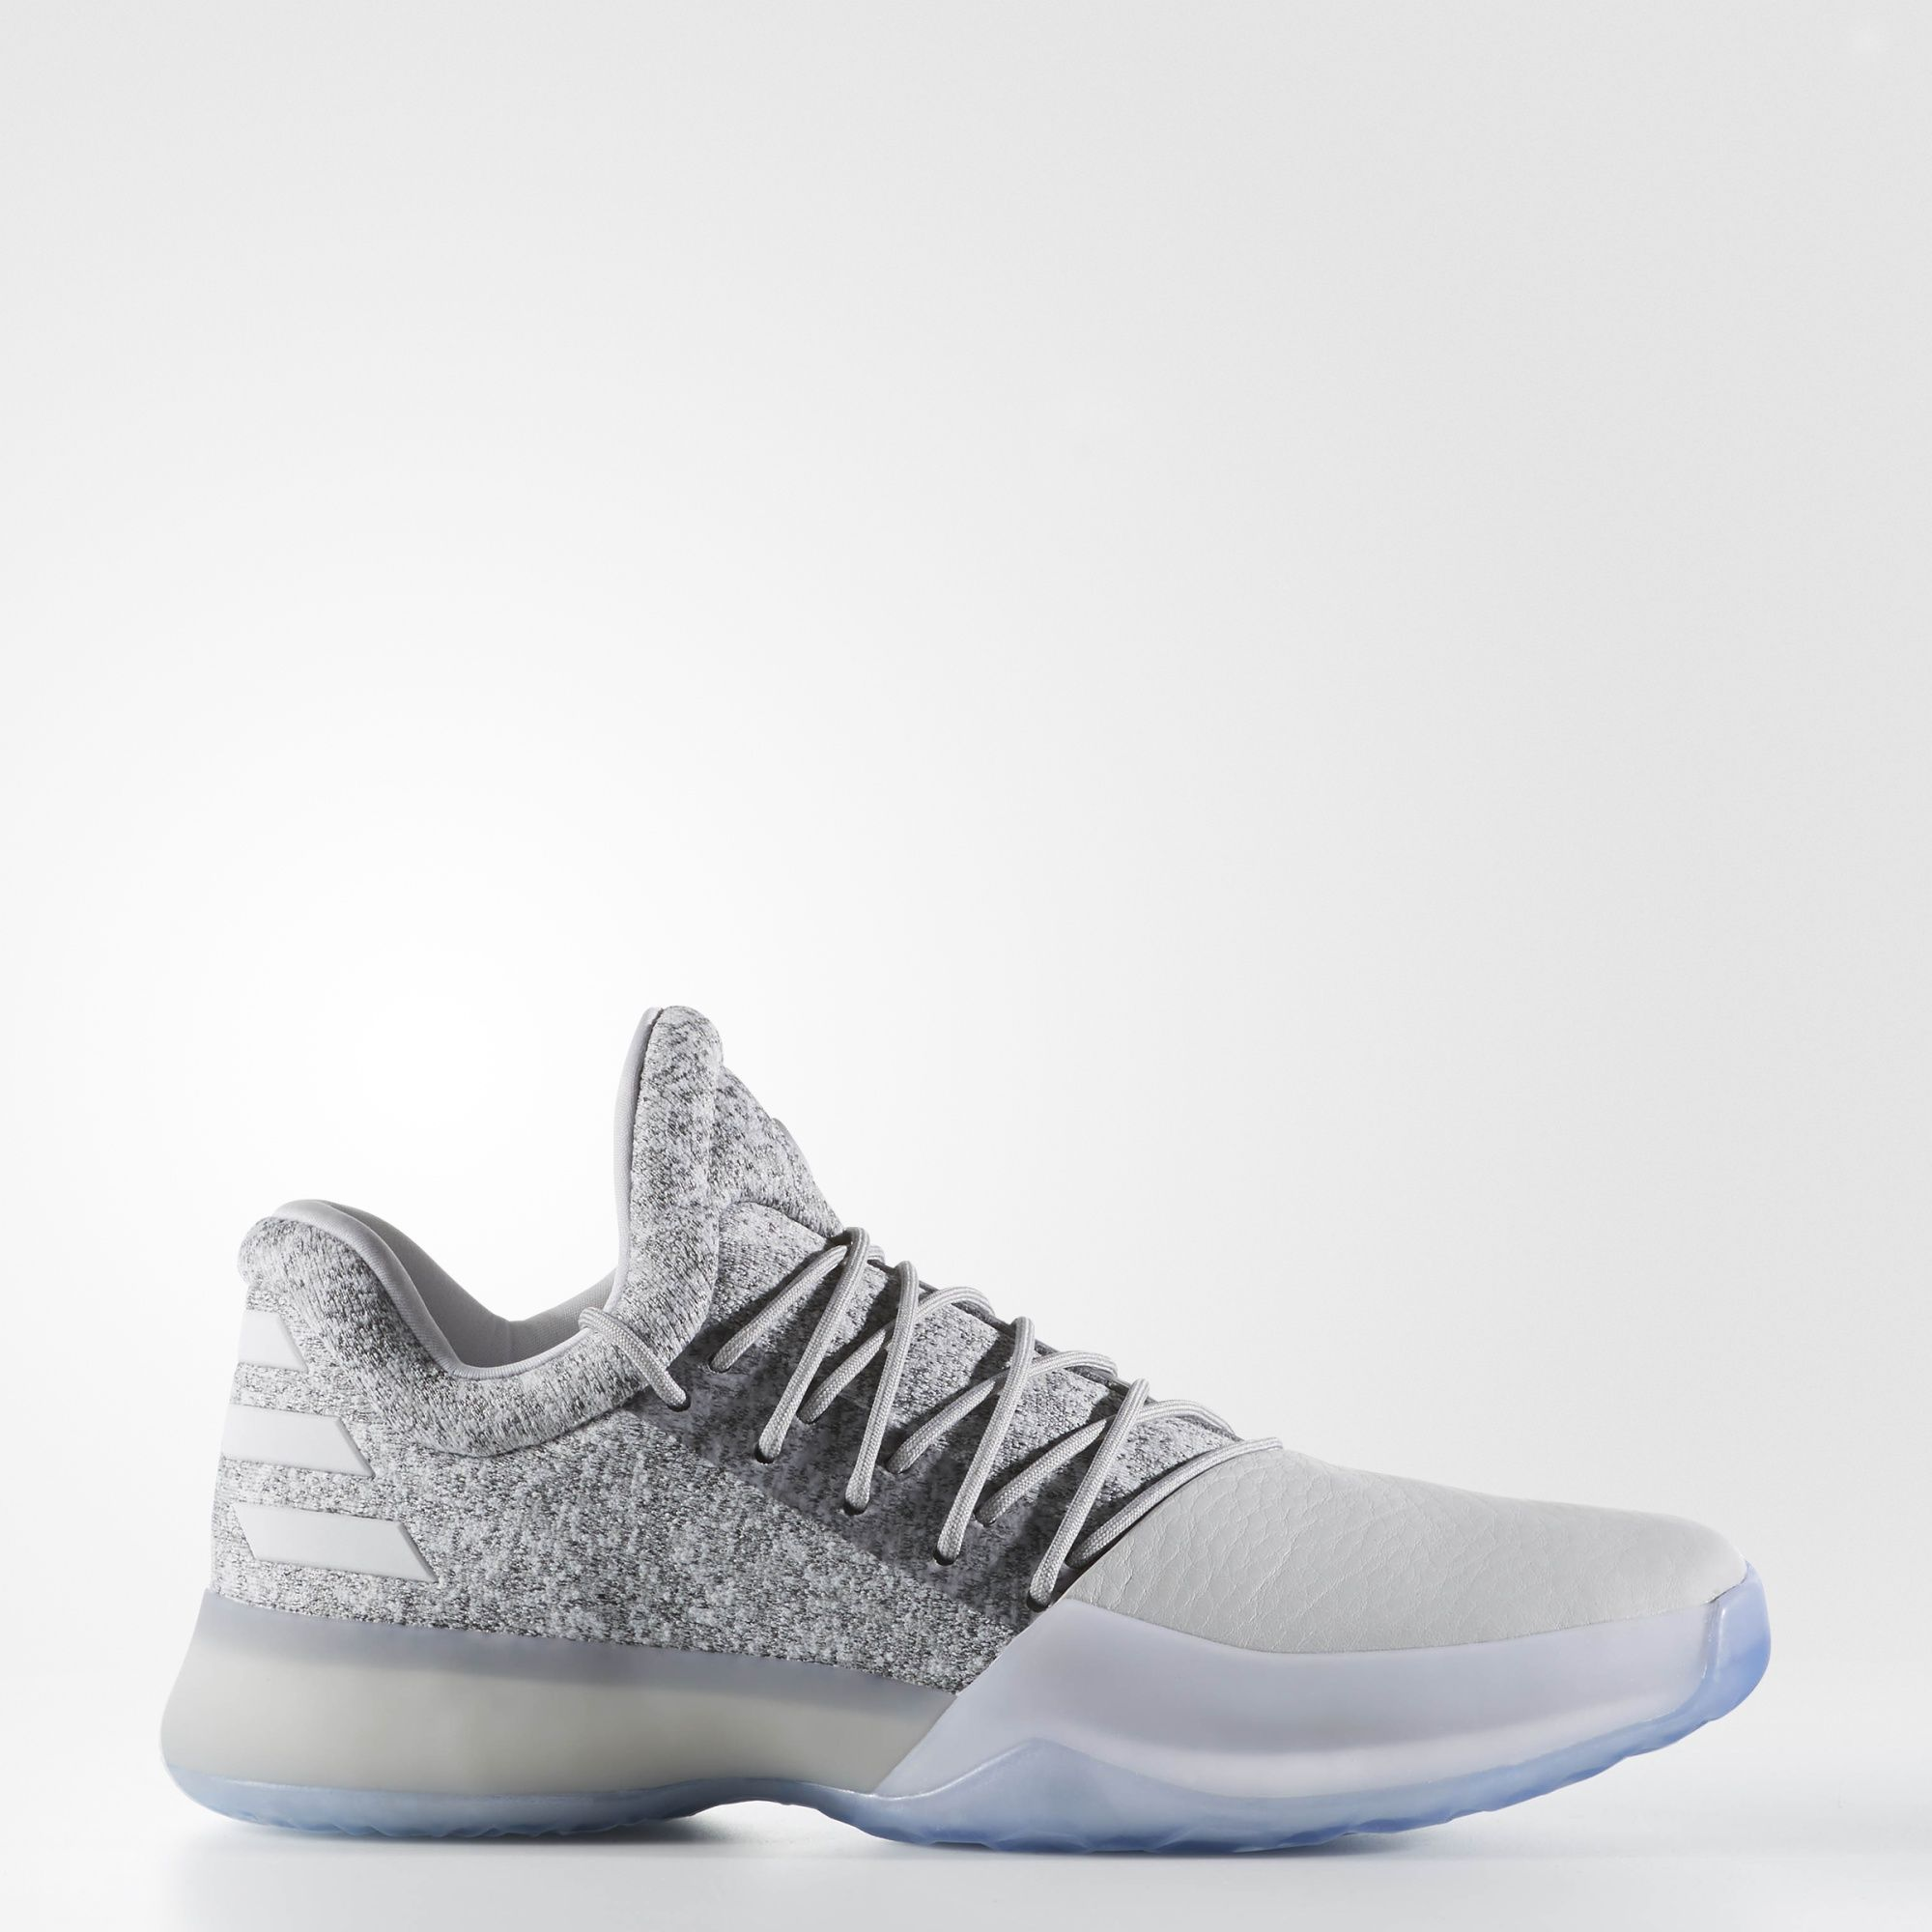 adidas - Harden Vol. 1 Shoes